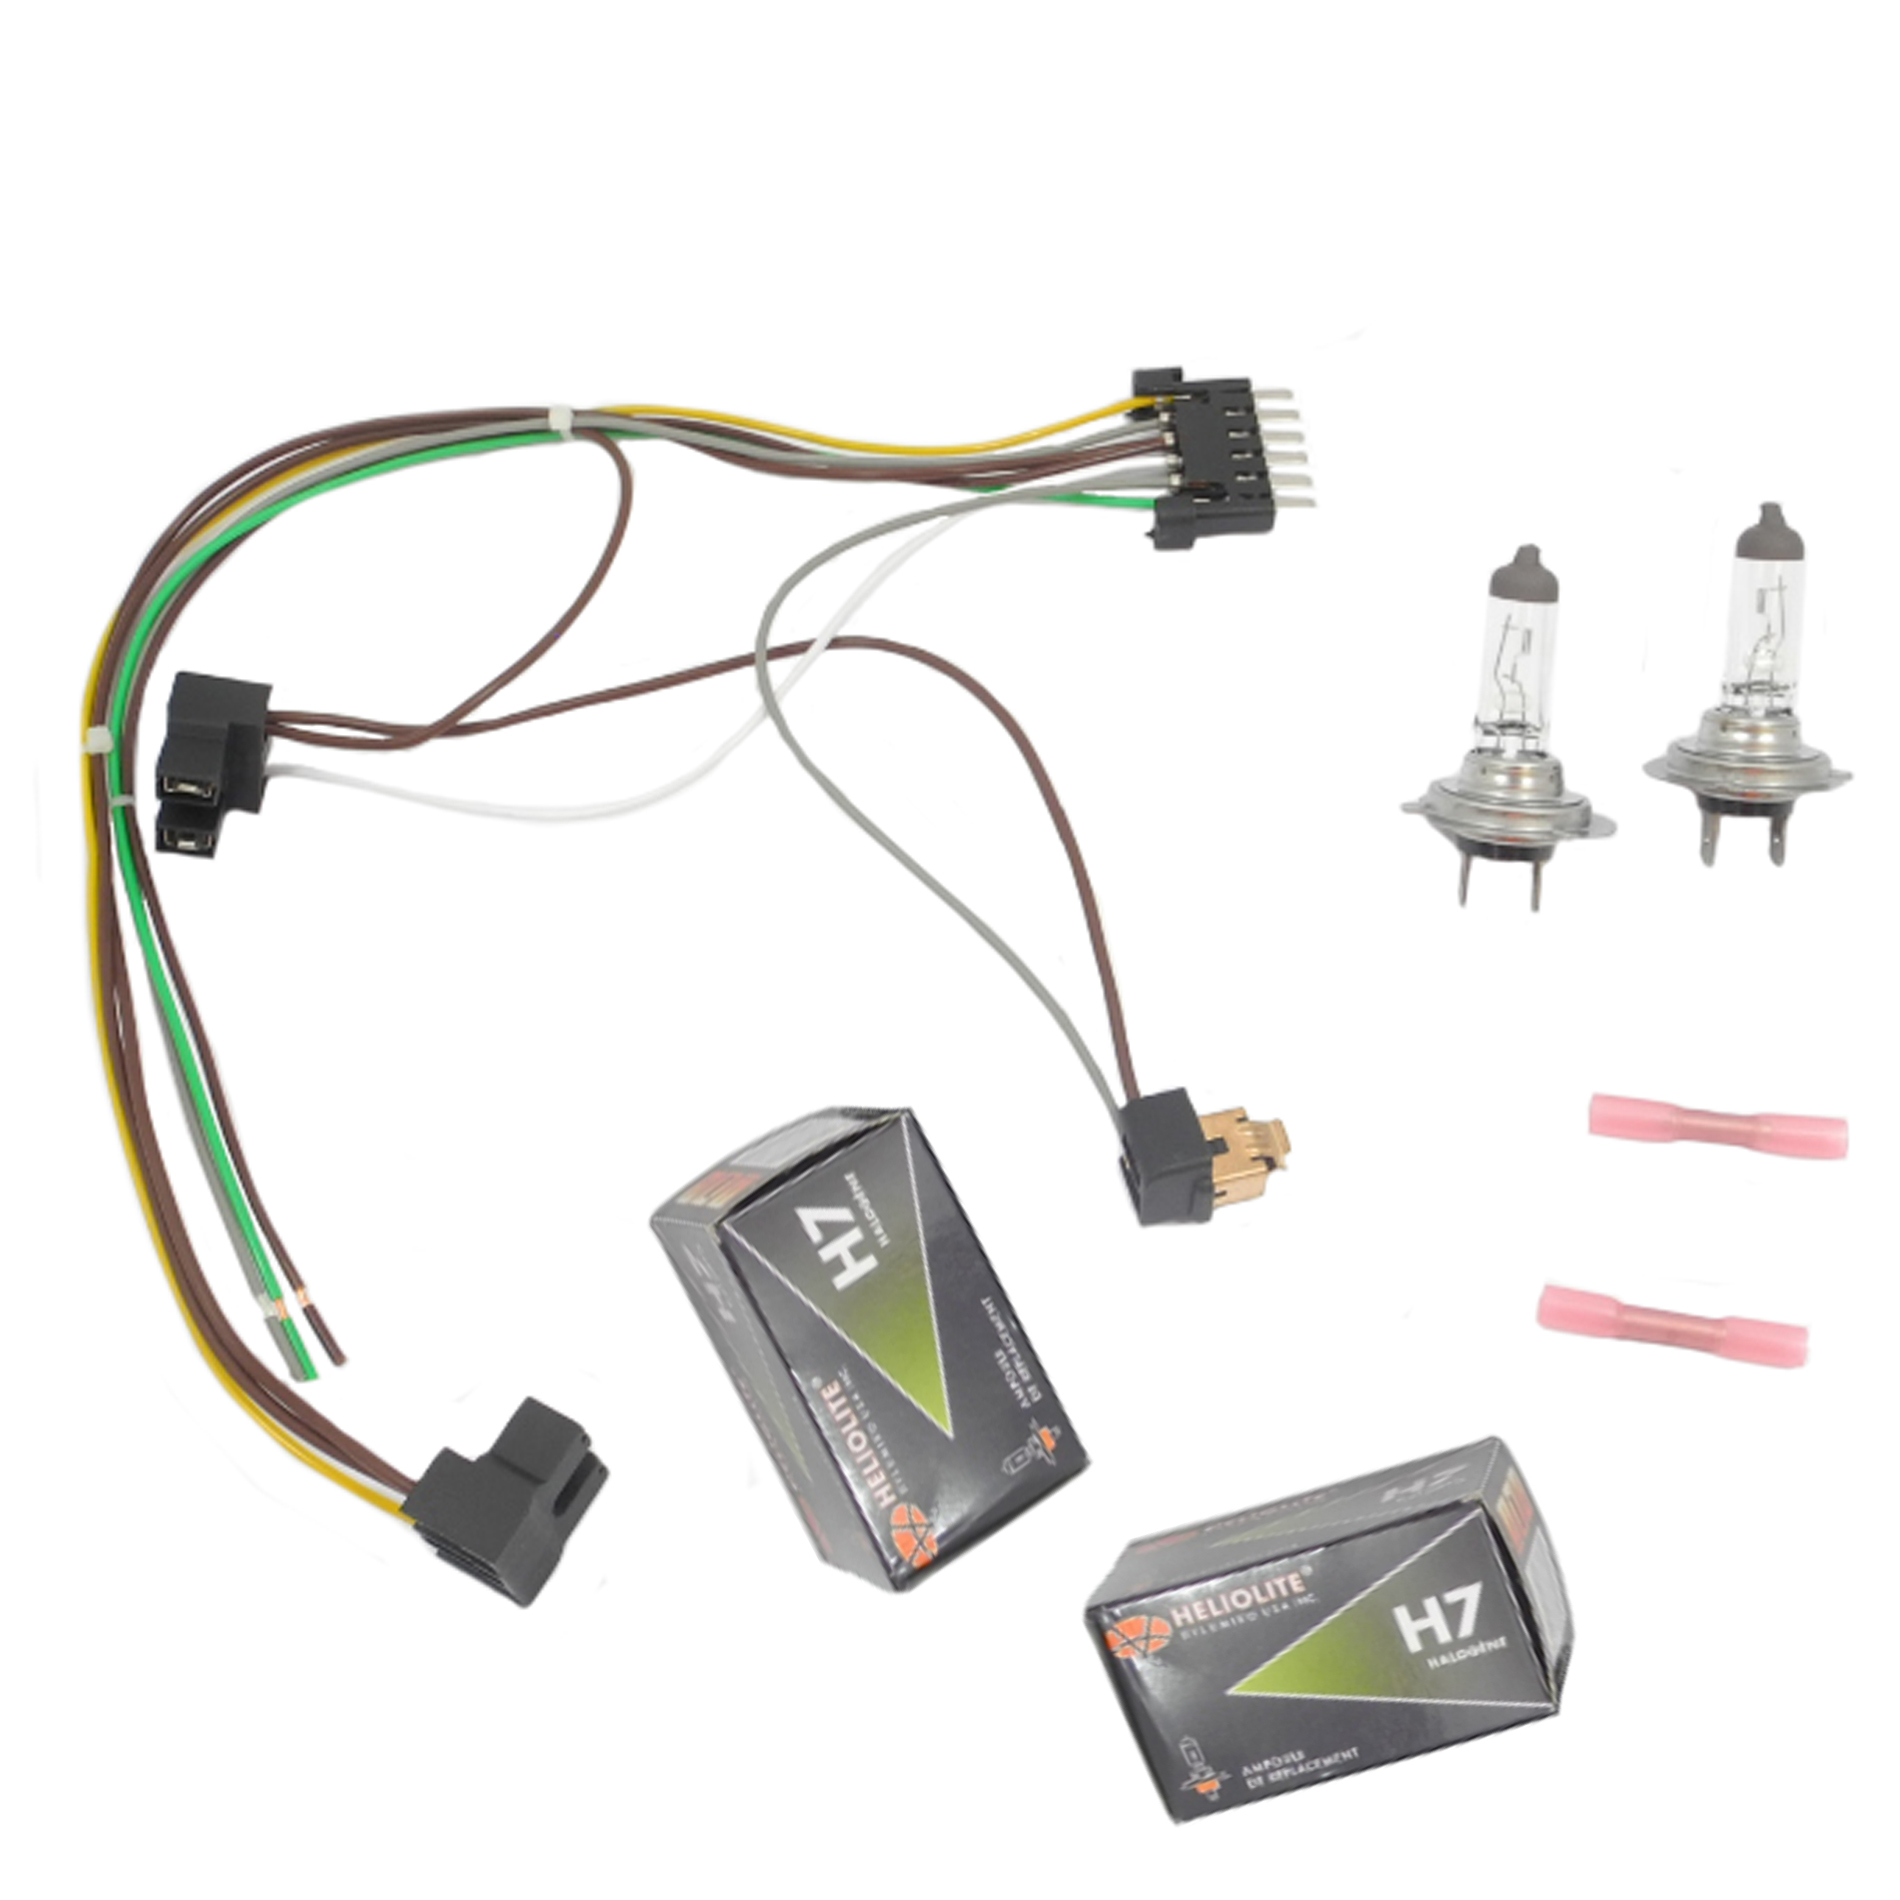 hight resolution of for s430 s500 benz left right headlight wiring harness h7 55w mercedes w220 headlight wiring harness connector kit fits to h7 bulbs